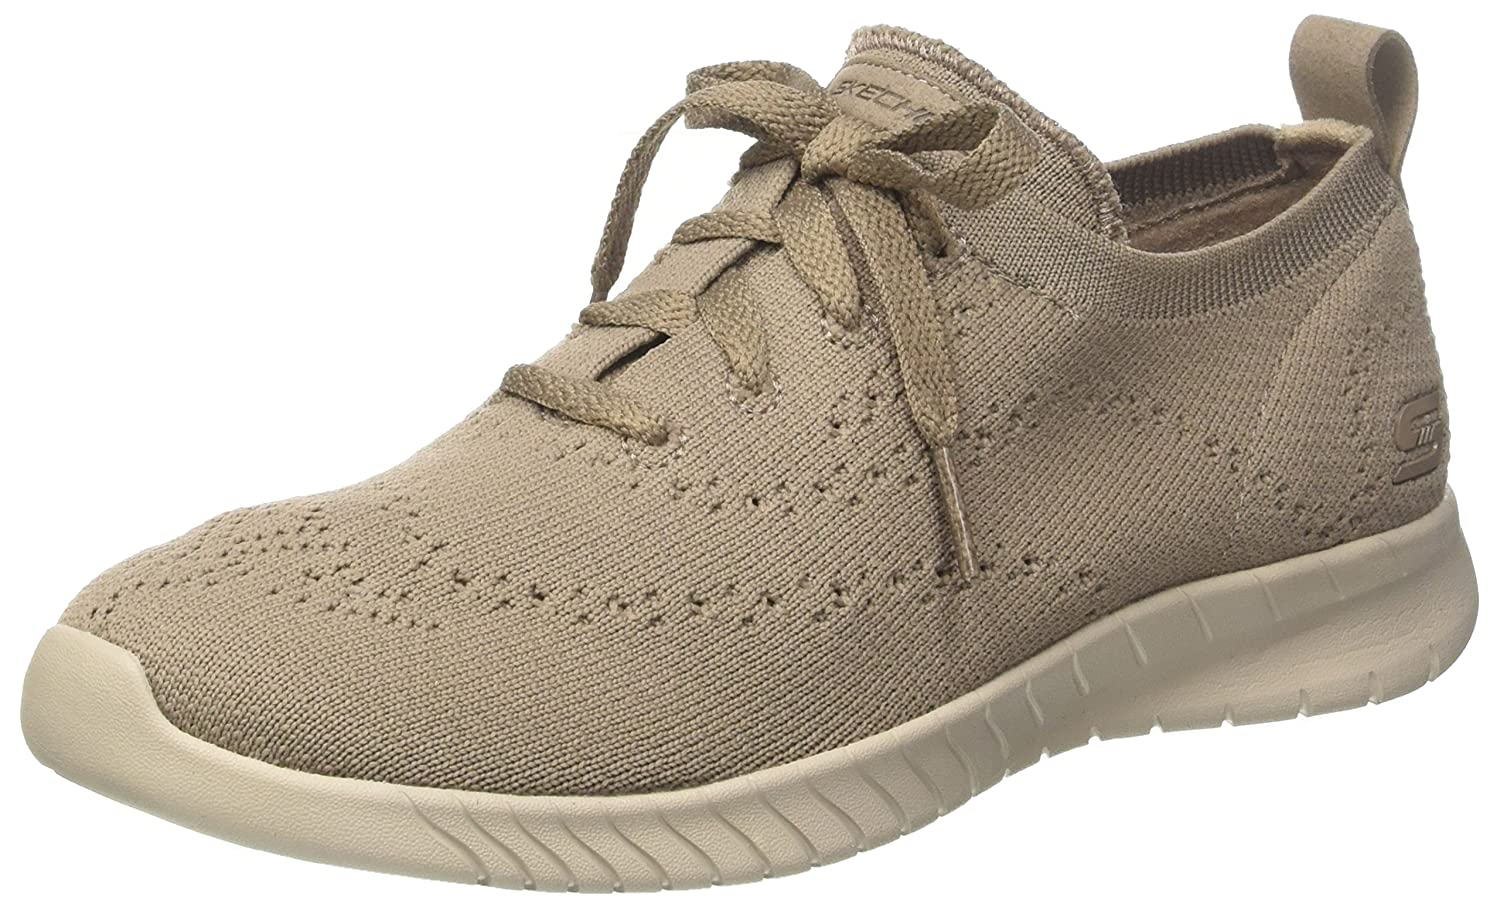 Taupe Skechers Women's Wave-Lite Fashion Sneakers